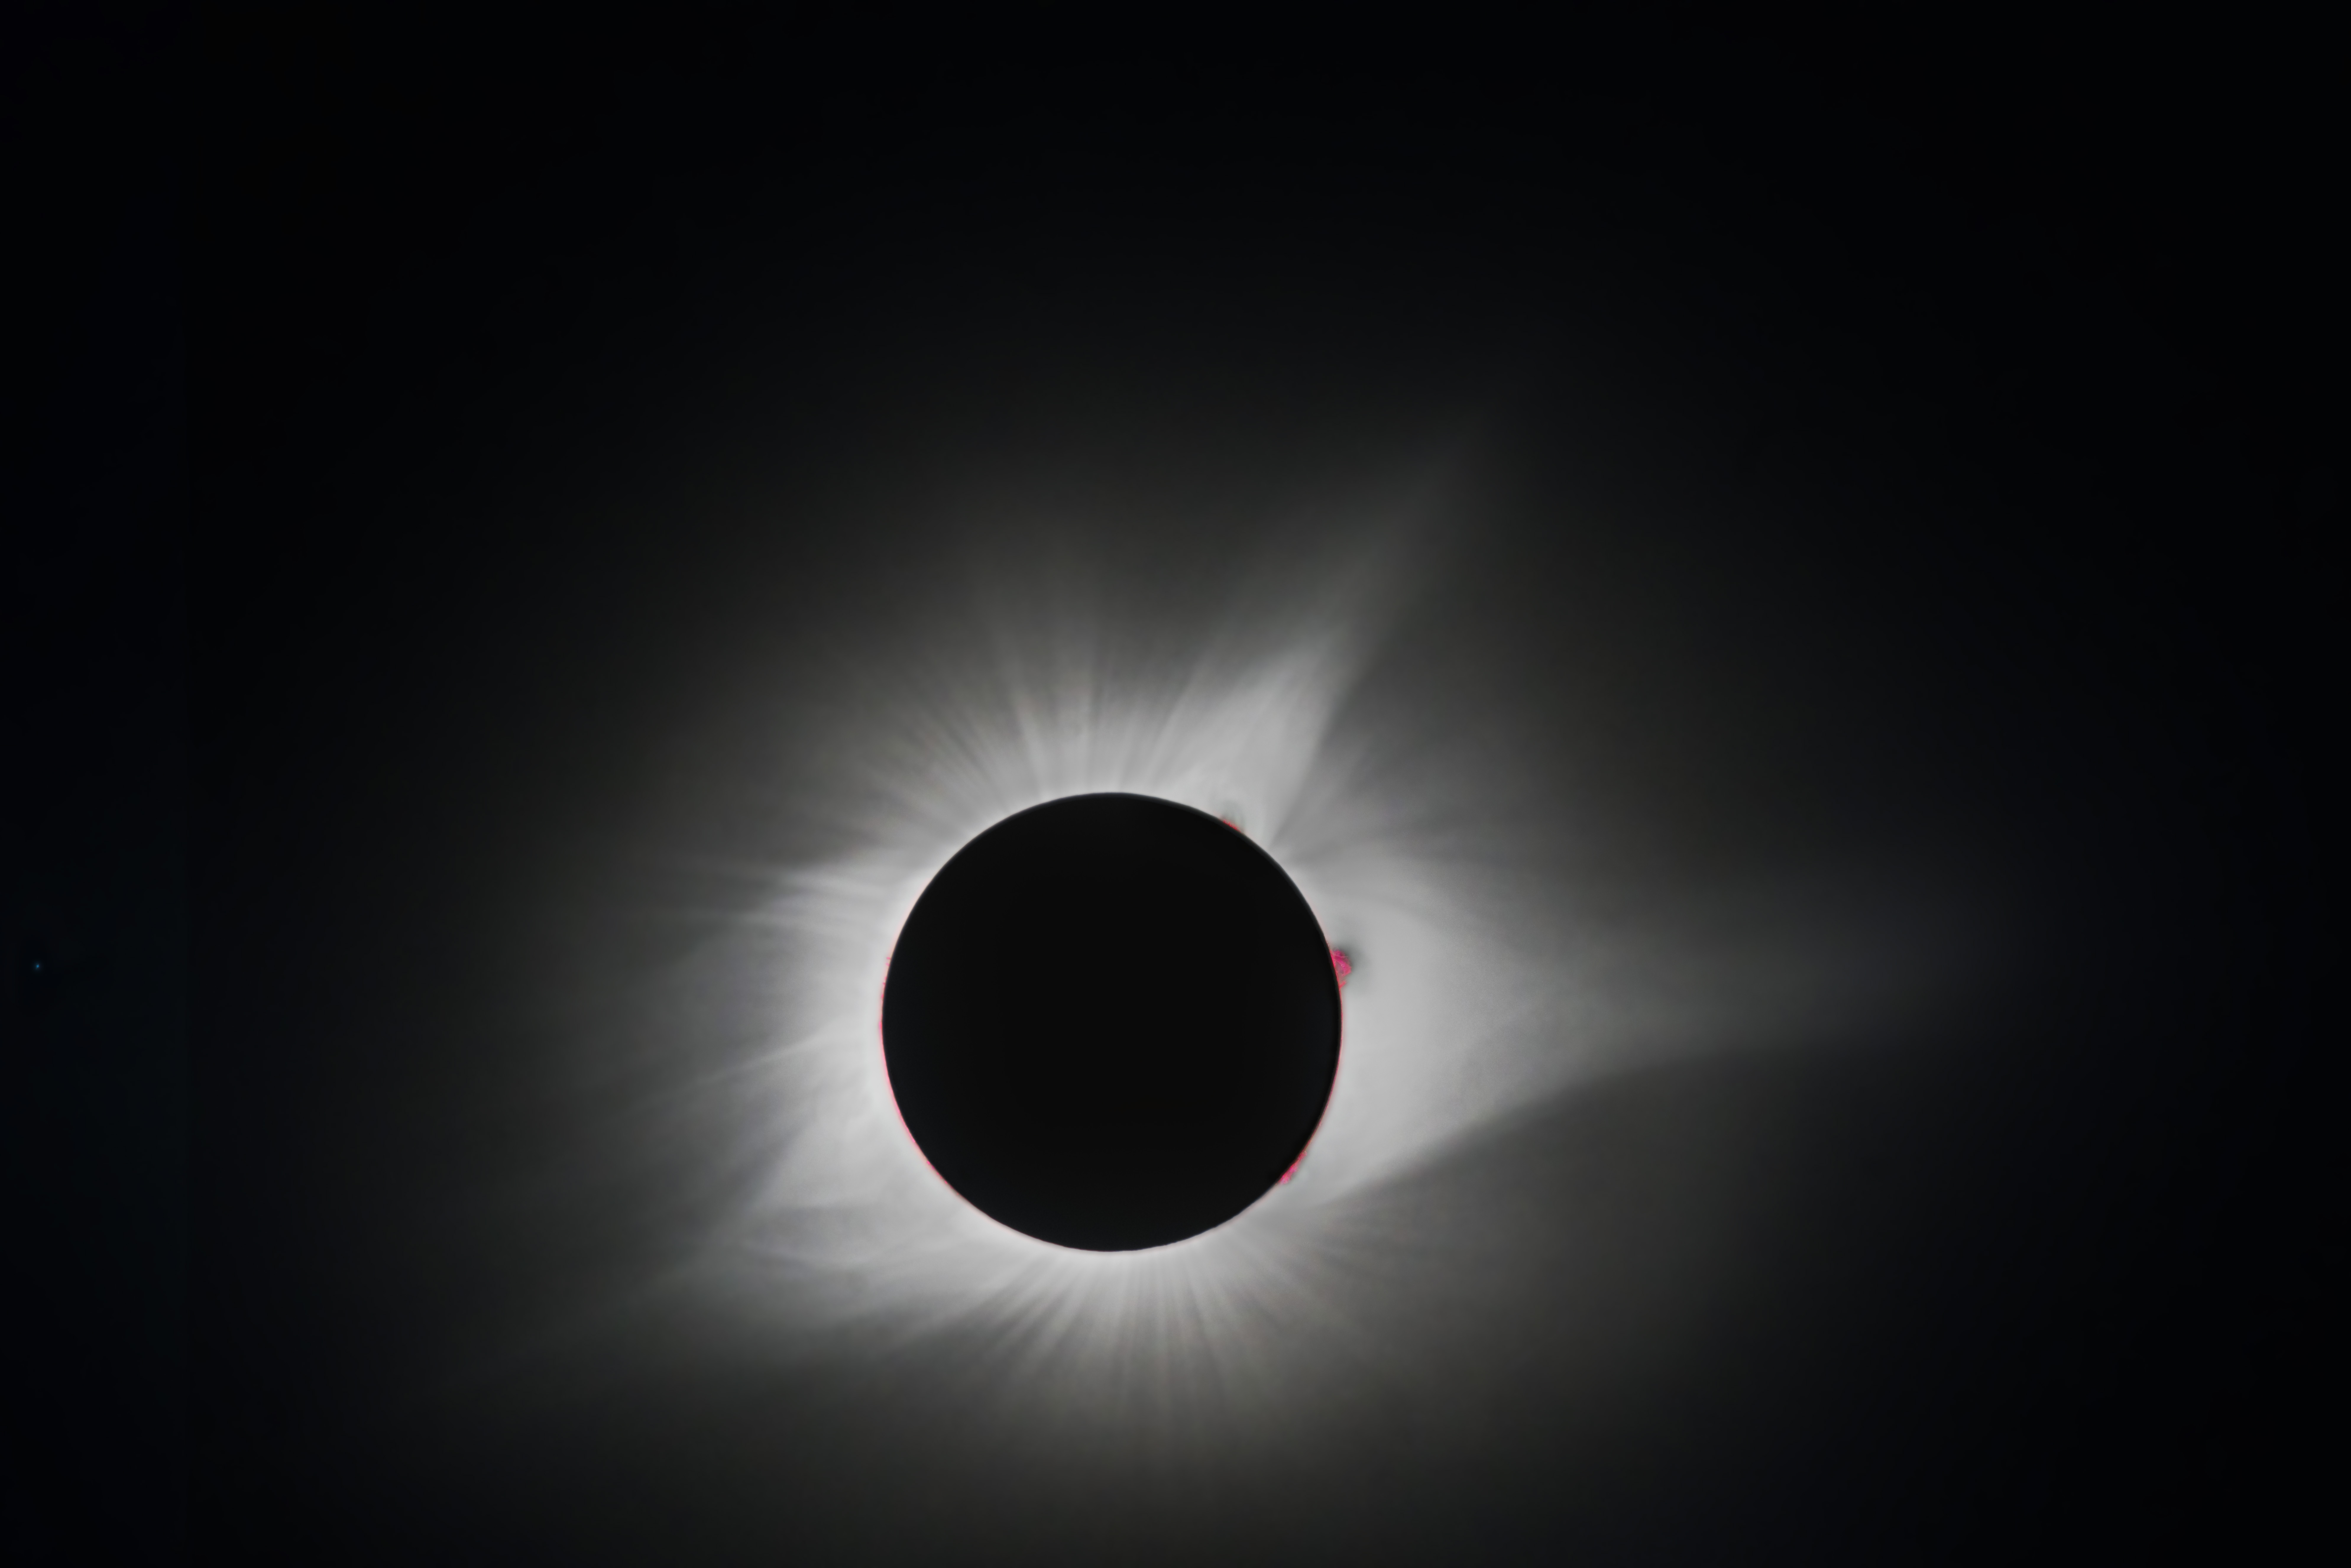 Eclipse Final Combined 1